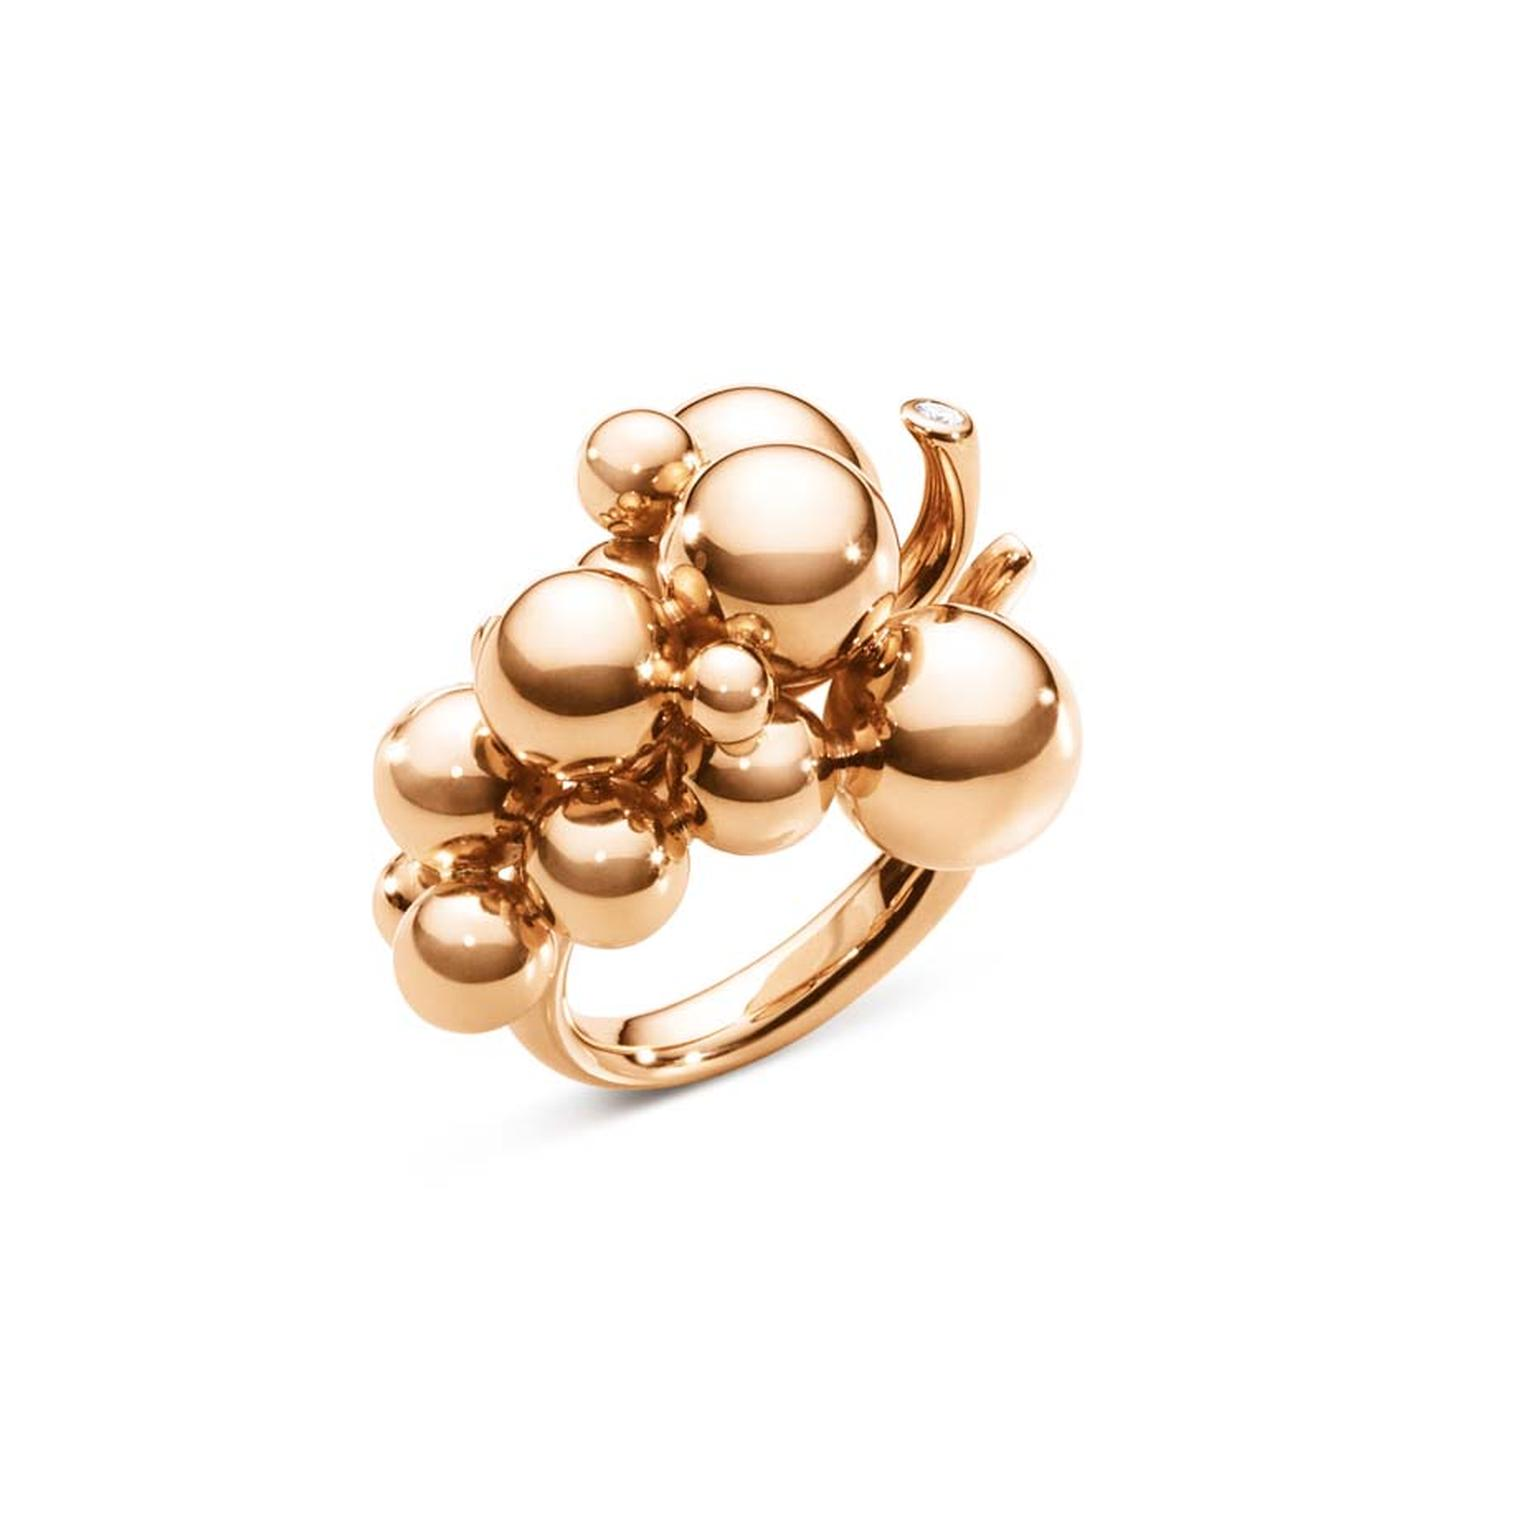 Georg Jensen rose gold ring with brilliant-cut diamonds, from the Moonlight Grapes collection (£2,325).